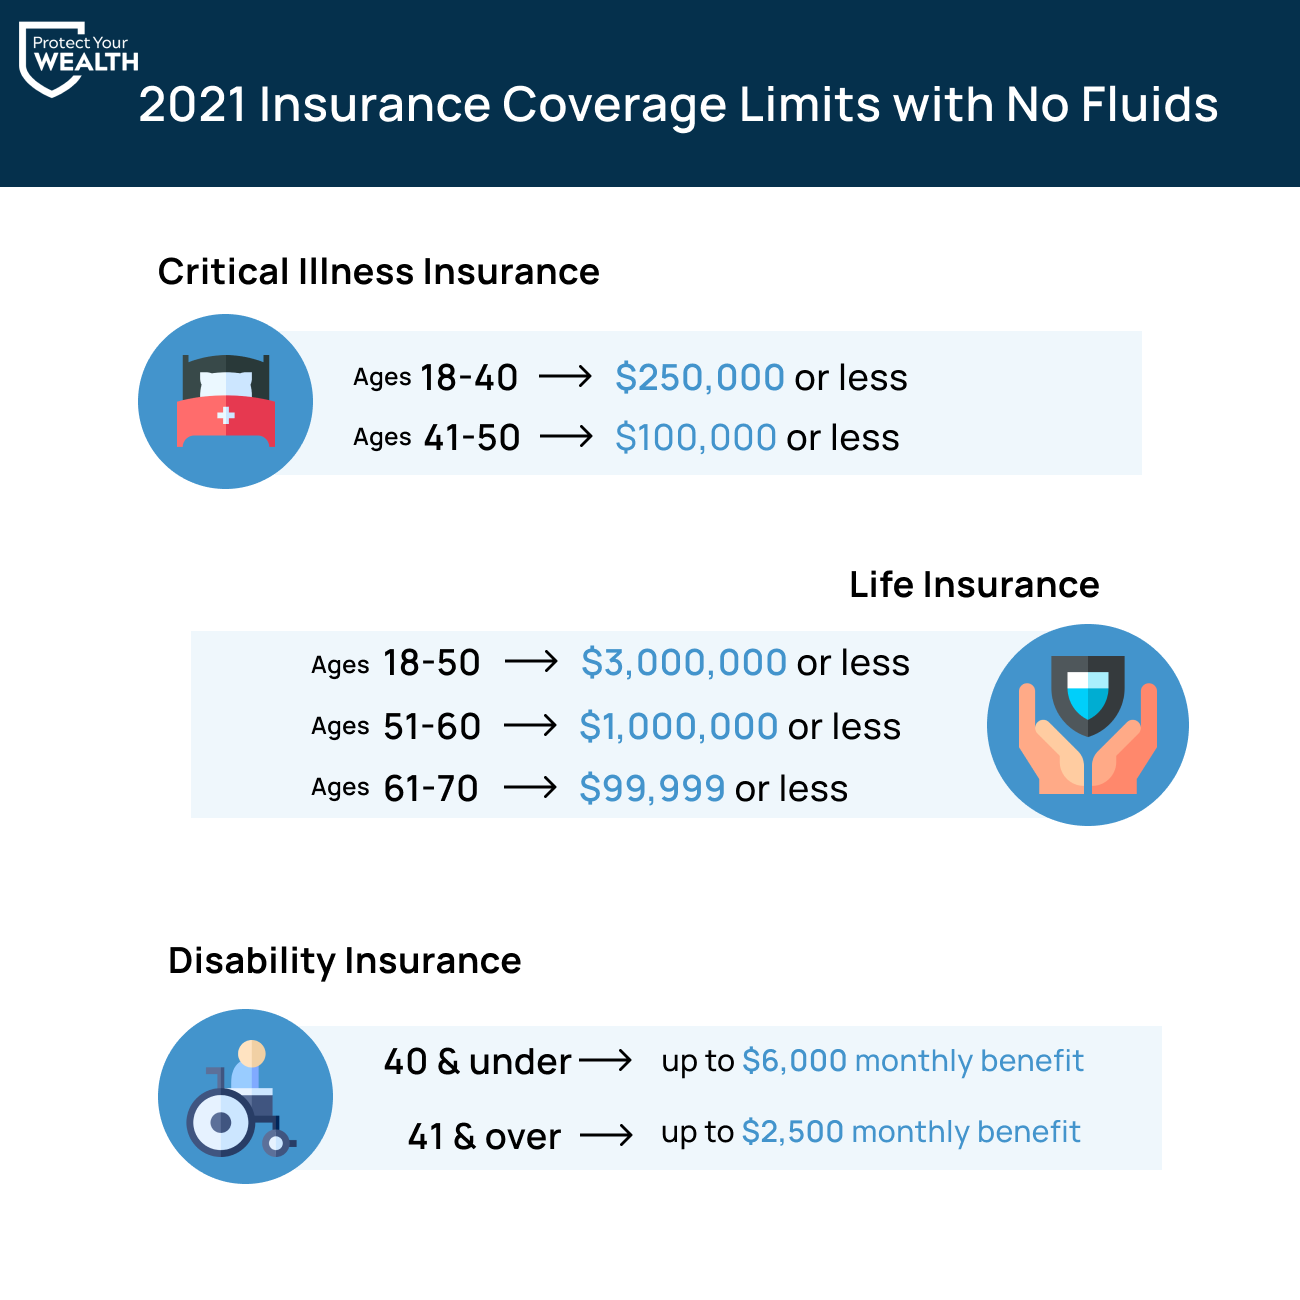 2021 insurance coverage limits with no fluids testing. Life insurance coverage can go up to $3,000,000, $1,000,000, or $99,999, depending on age. Critical illness insurance coverage can be up to $250,000, and disability insurance can provide up to $6,000 in monthly income benefits